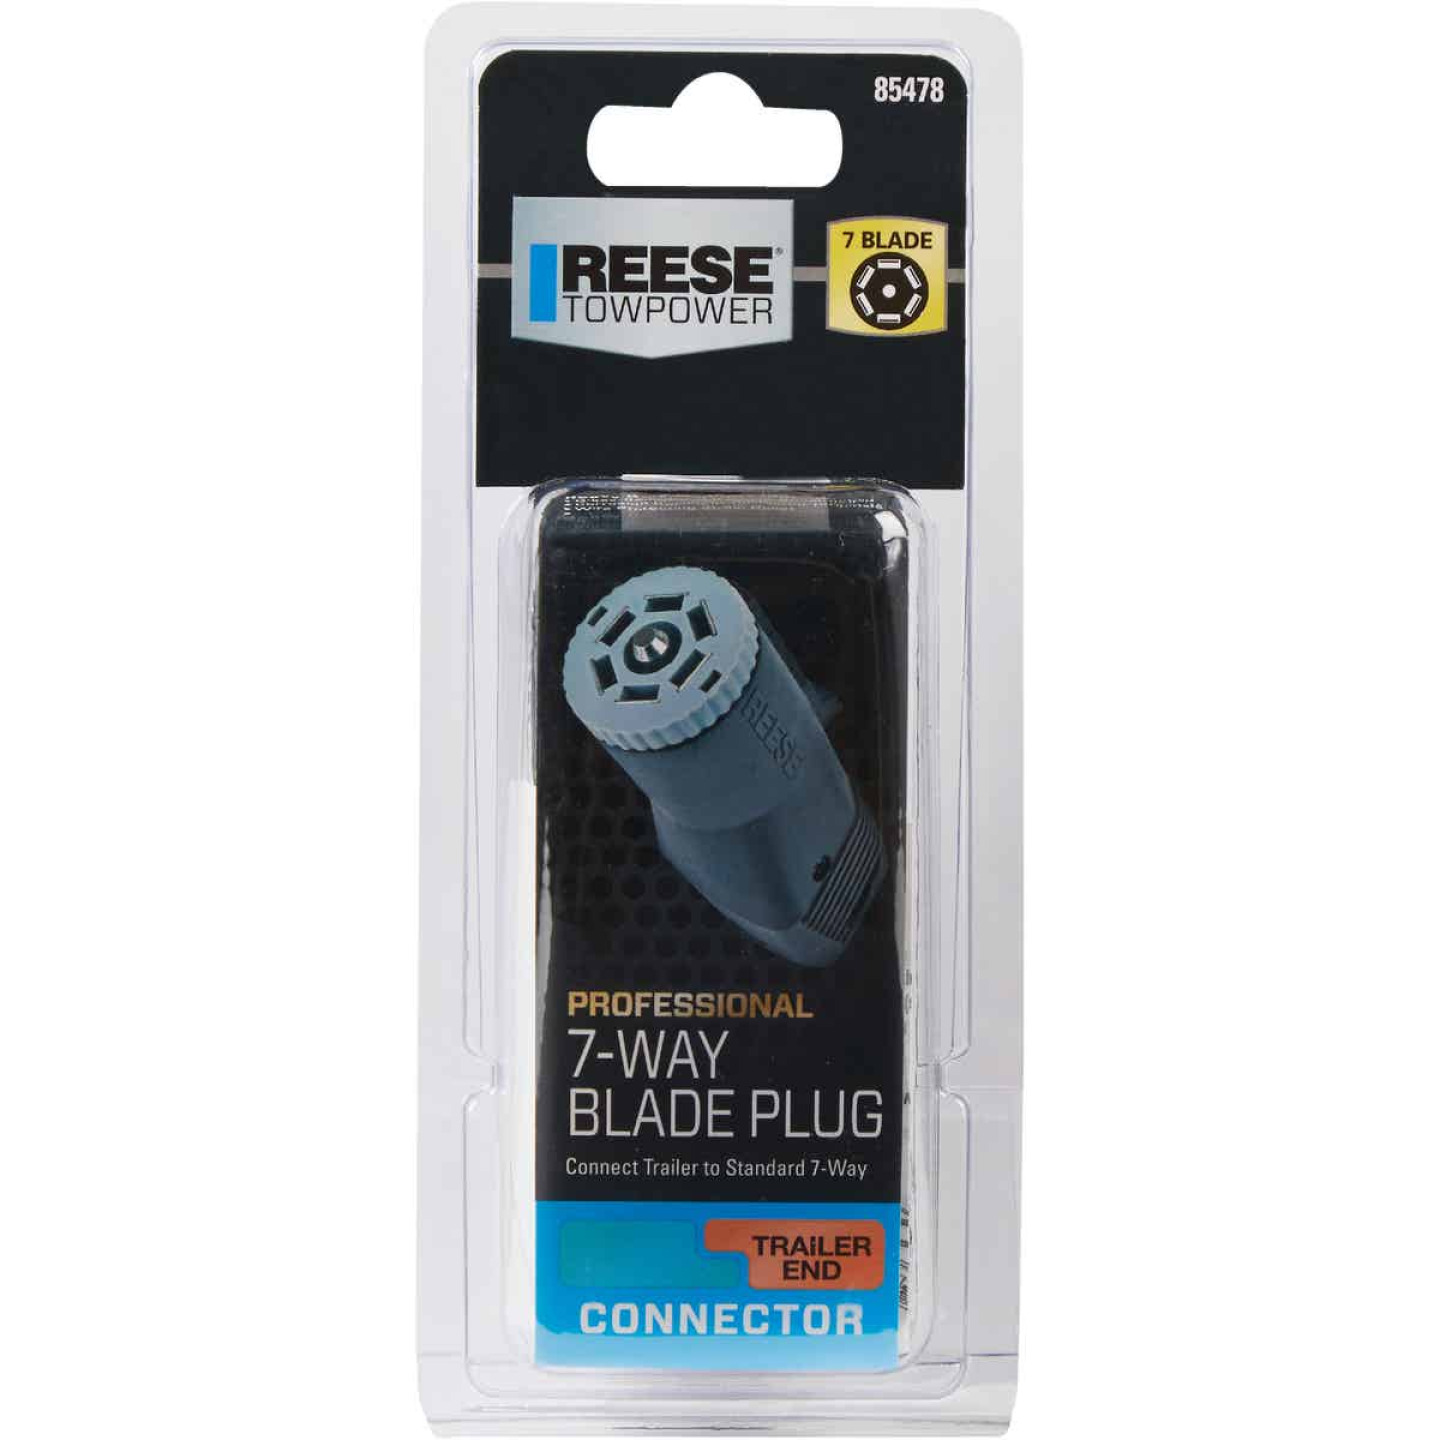 Reese Towpower 7-Blade Professional Trailer Side Connector Image 2